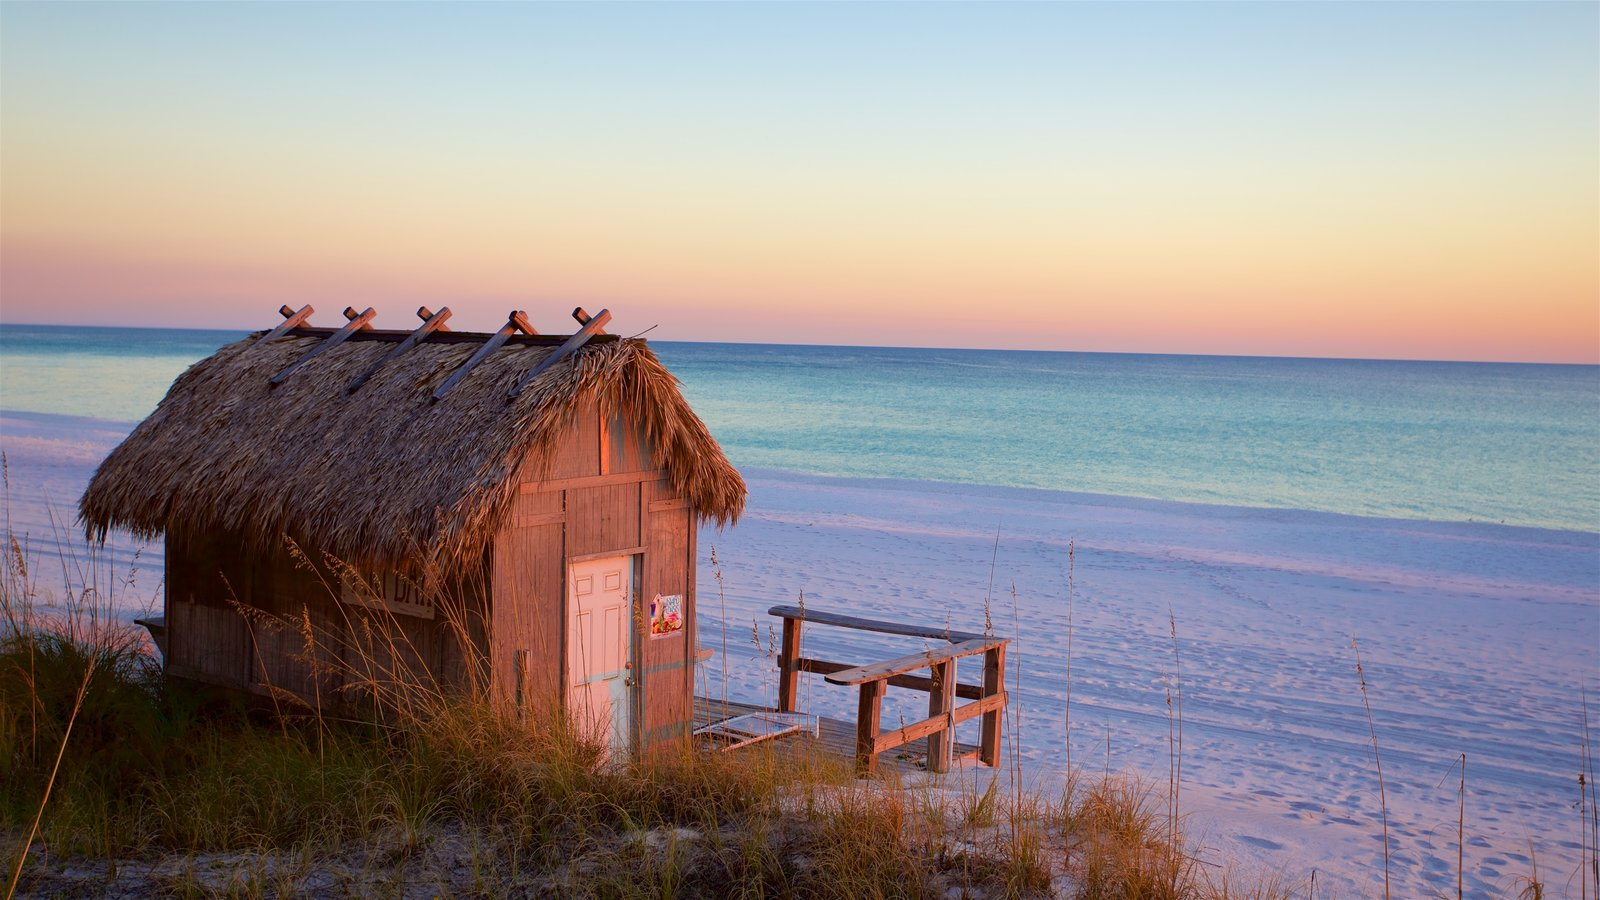 Florida Panhandle featuring a bay or harbor, a sunset and a beach